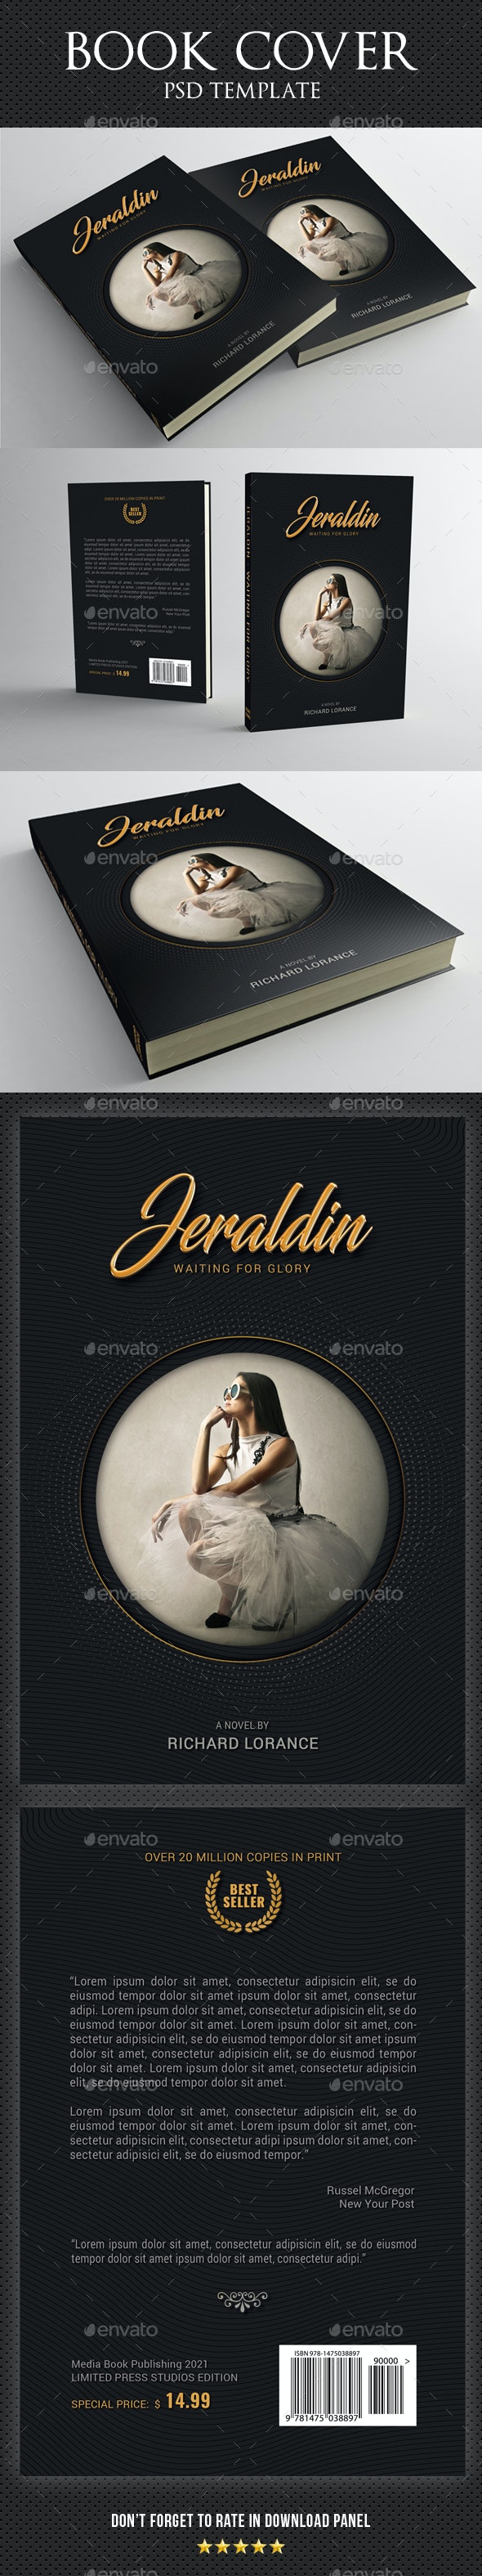 Book Cover Template 82 - Miscellaneous Print Templates